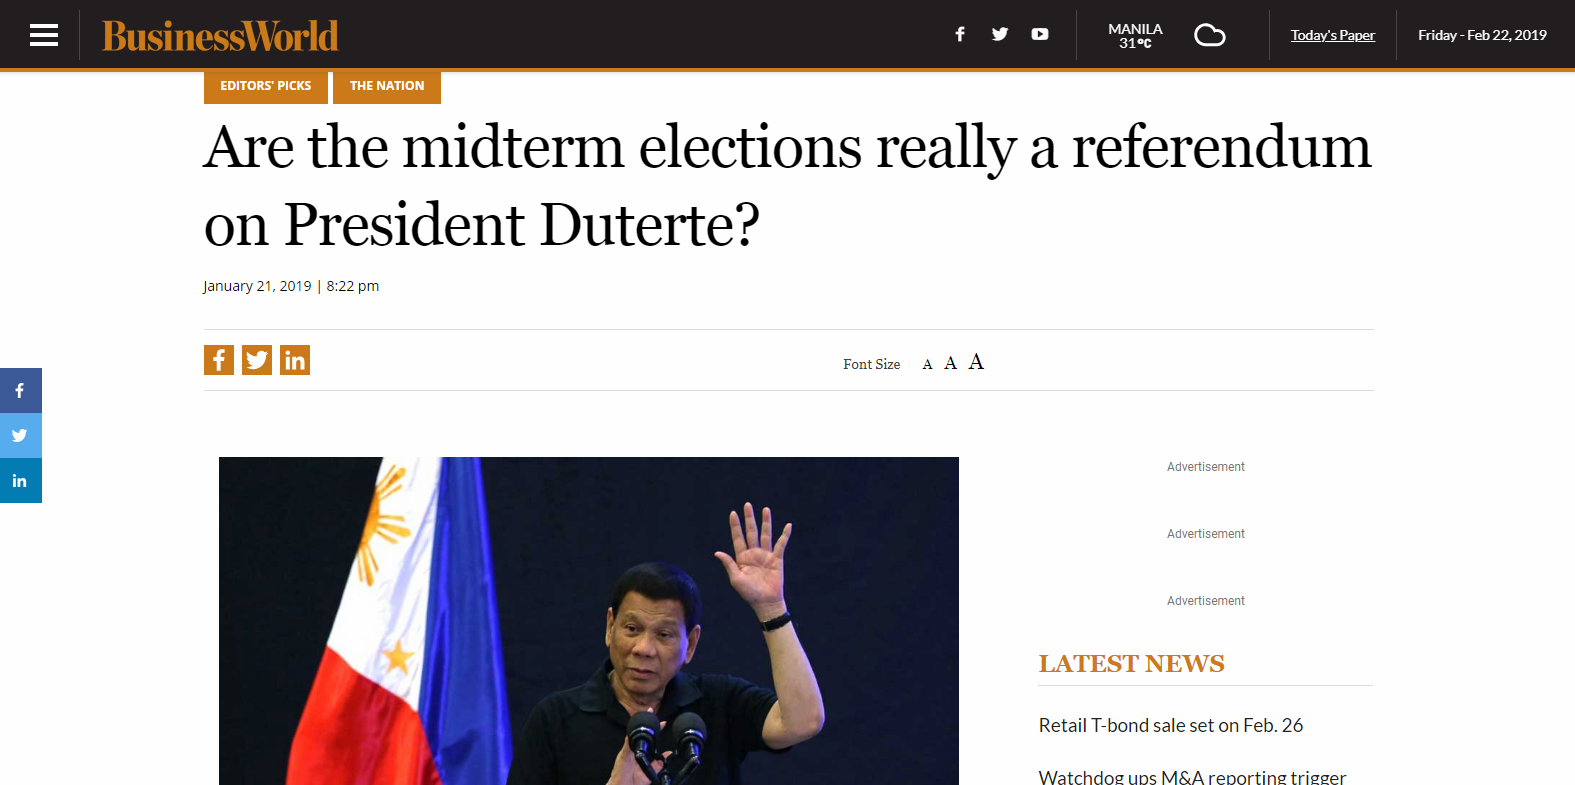 Are the midterm elections really a referendum on President Duterte?